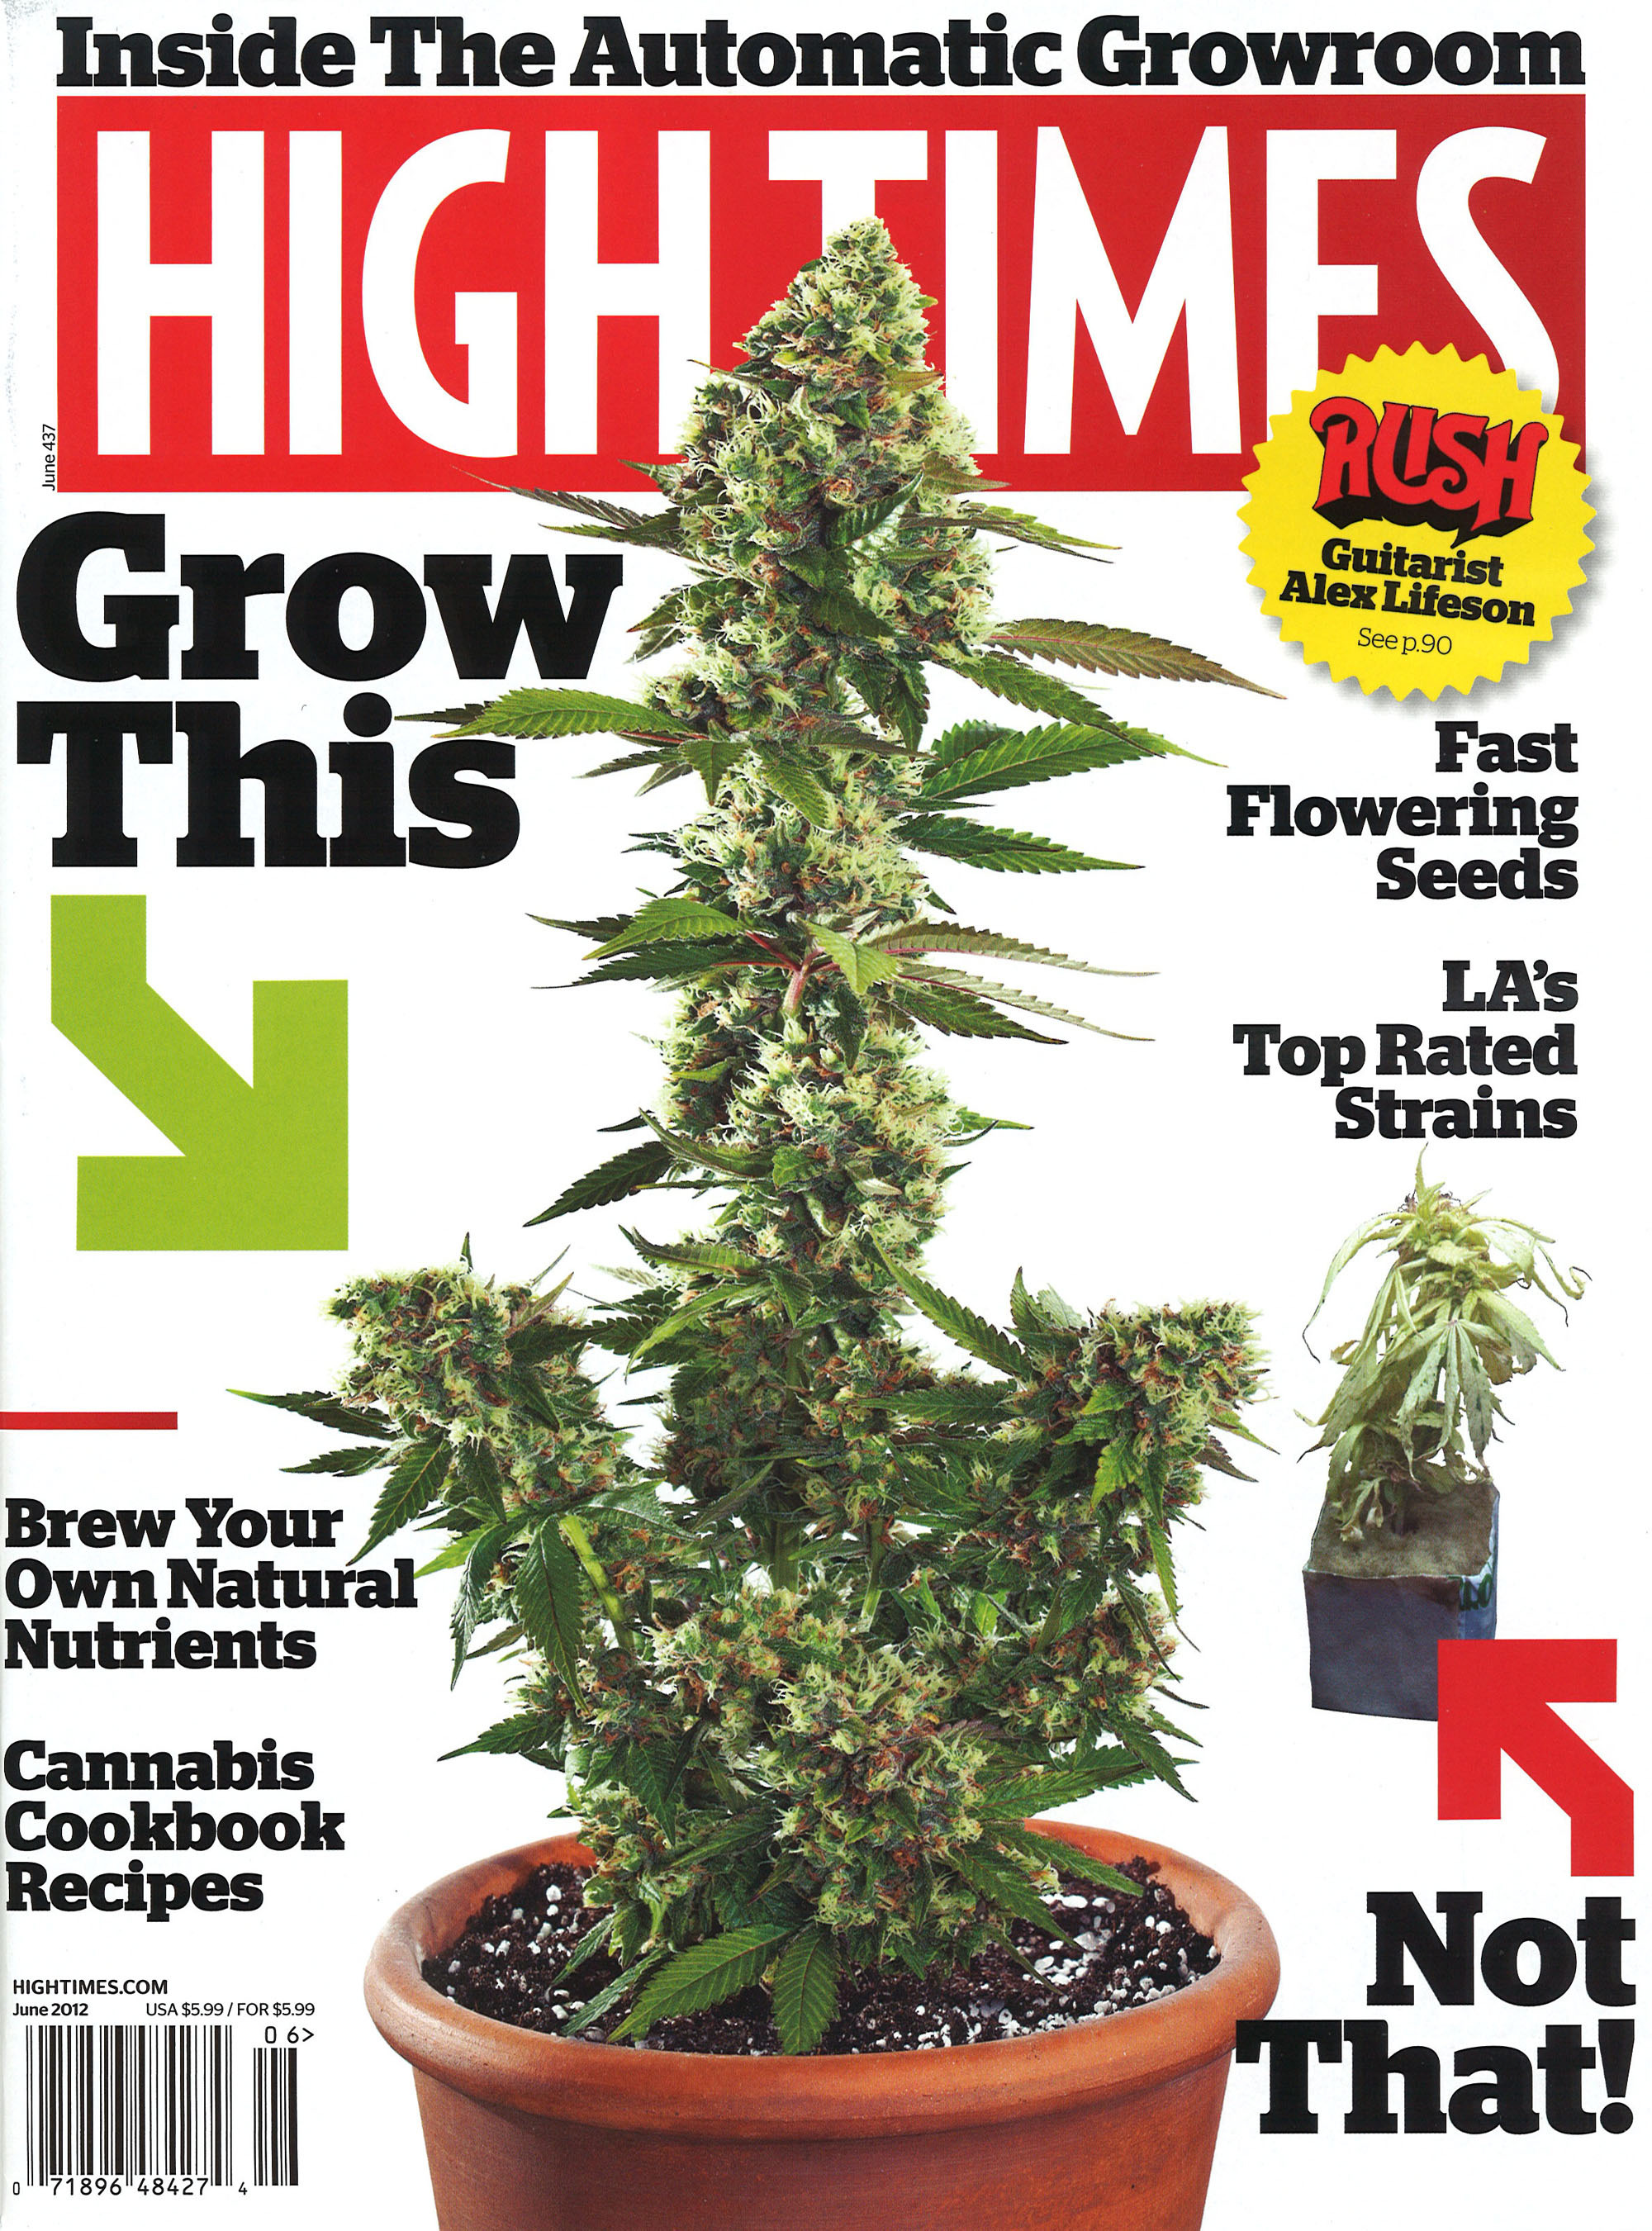 High Times Magazine June 1976 Early Issue